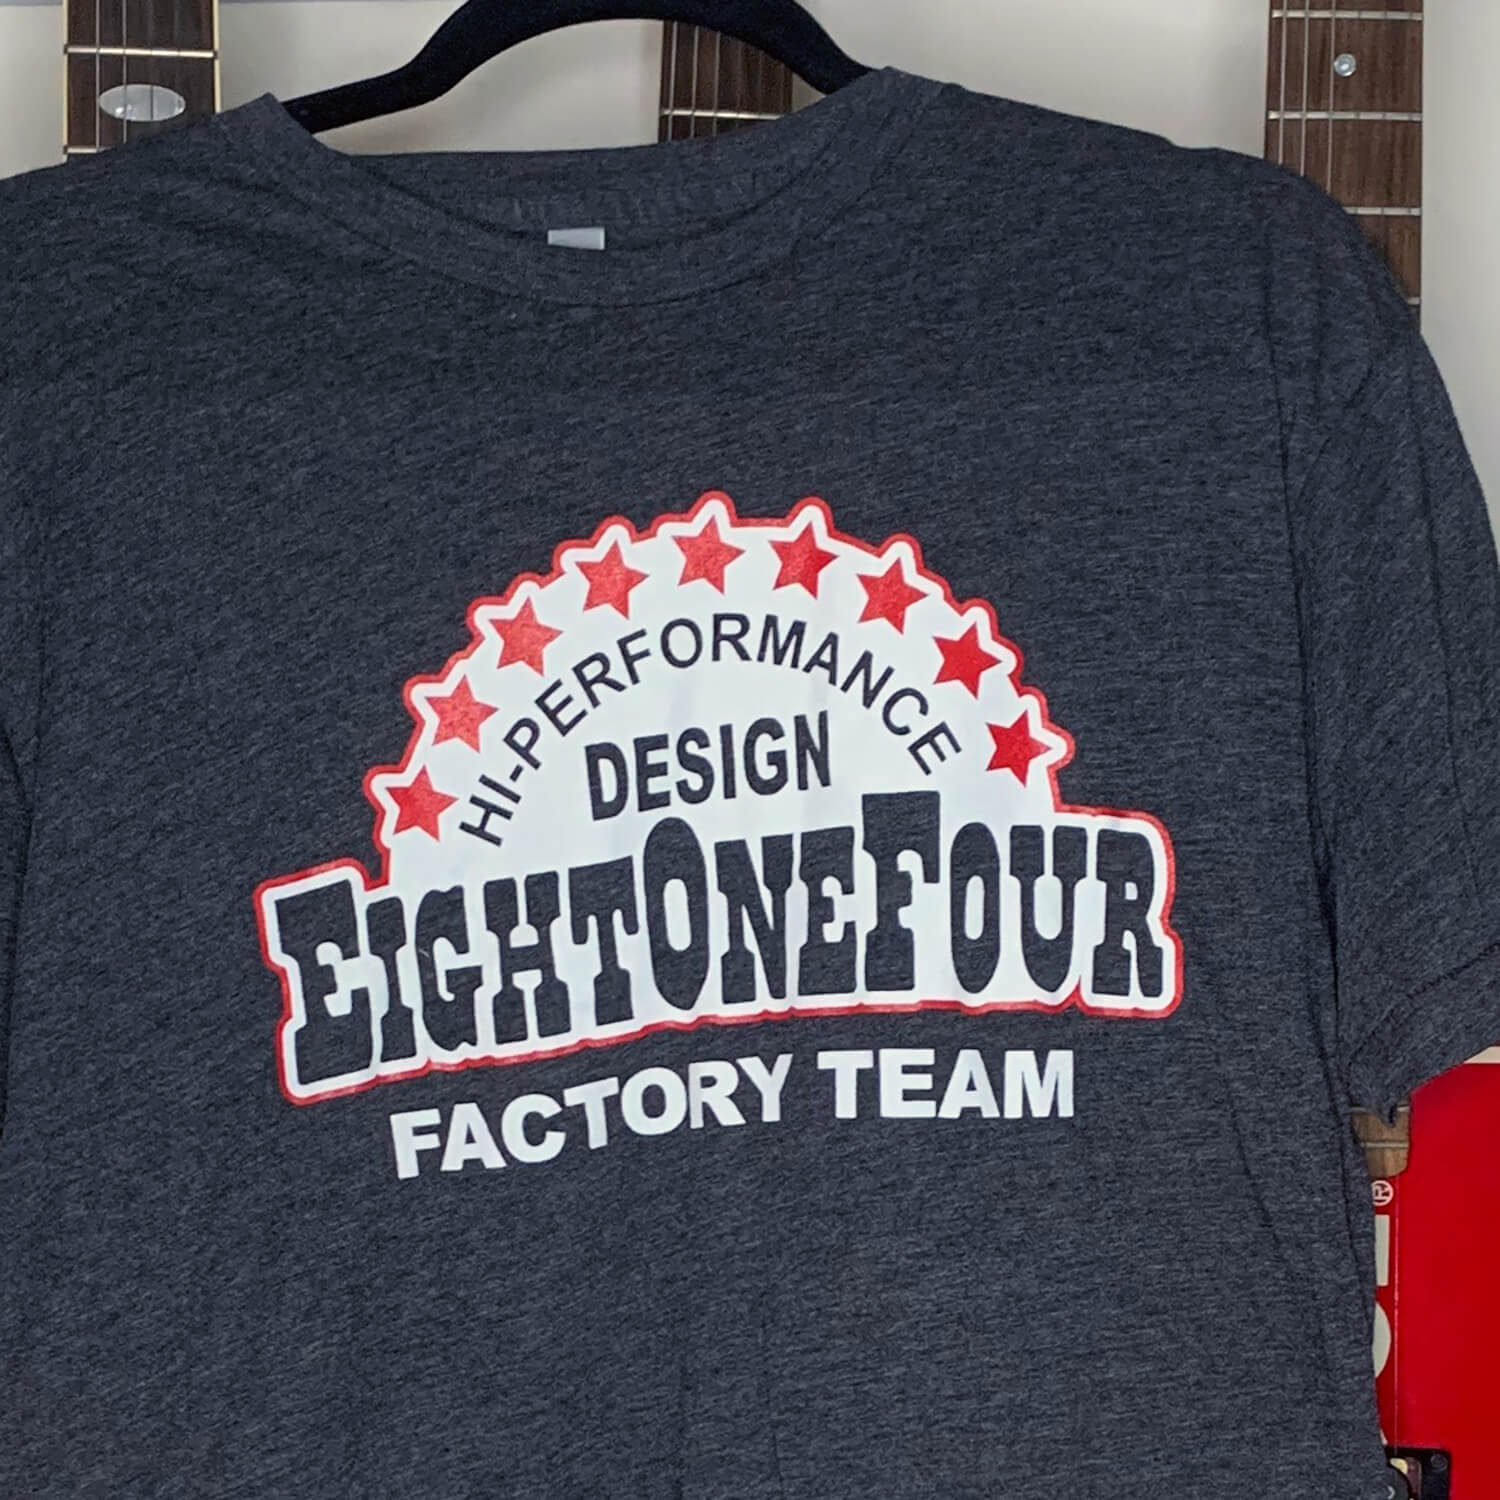 EightOneFour Design Factory Team Tee